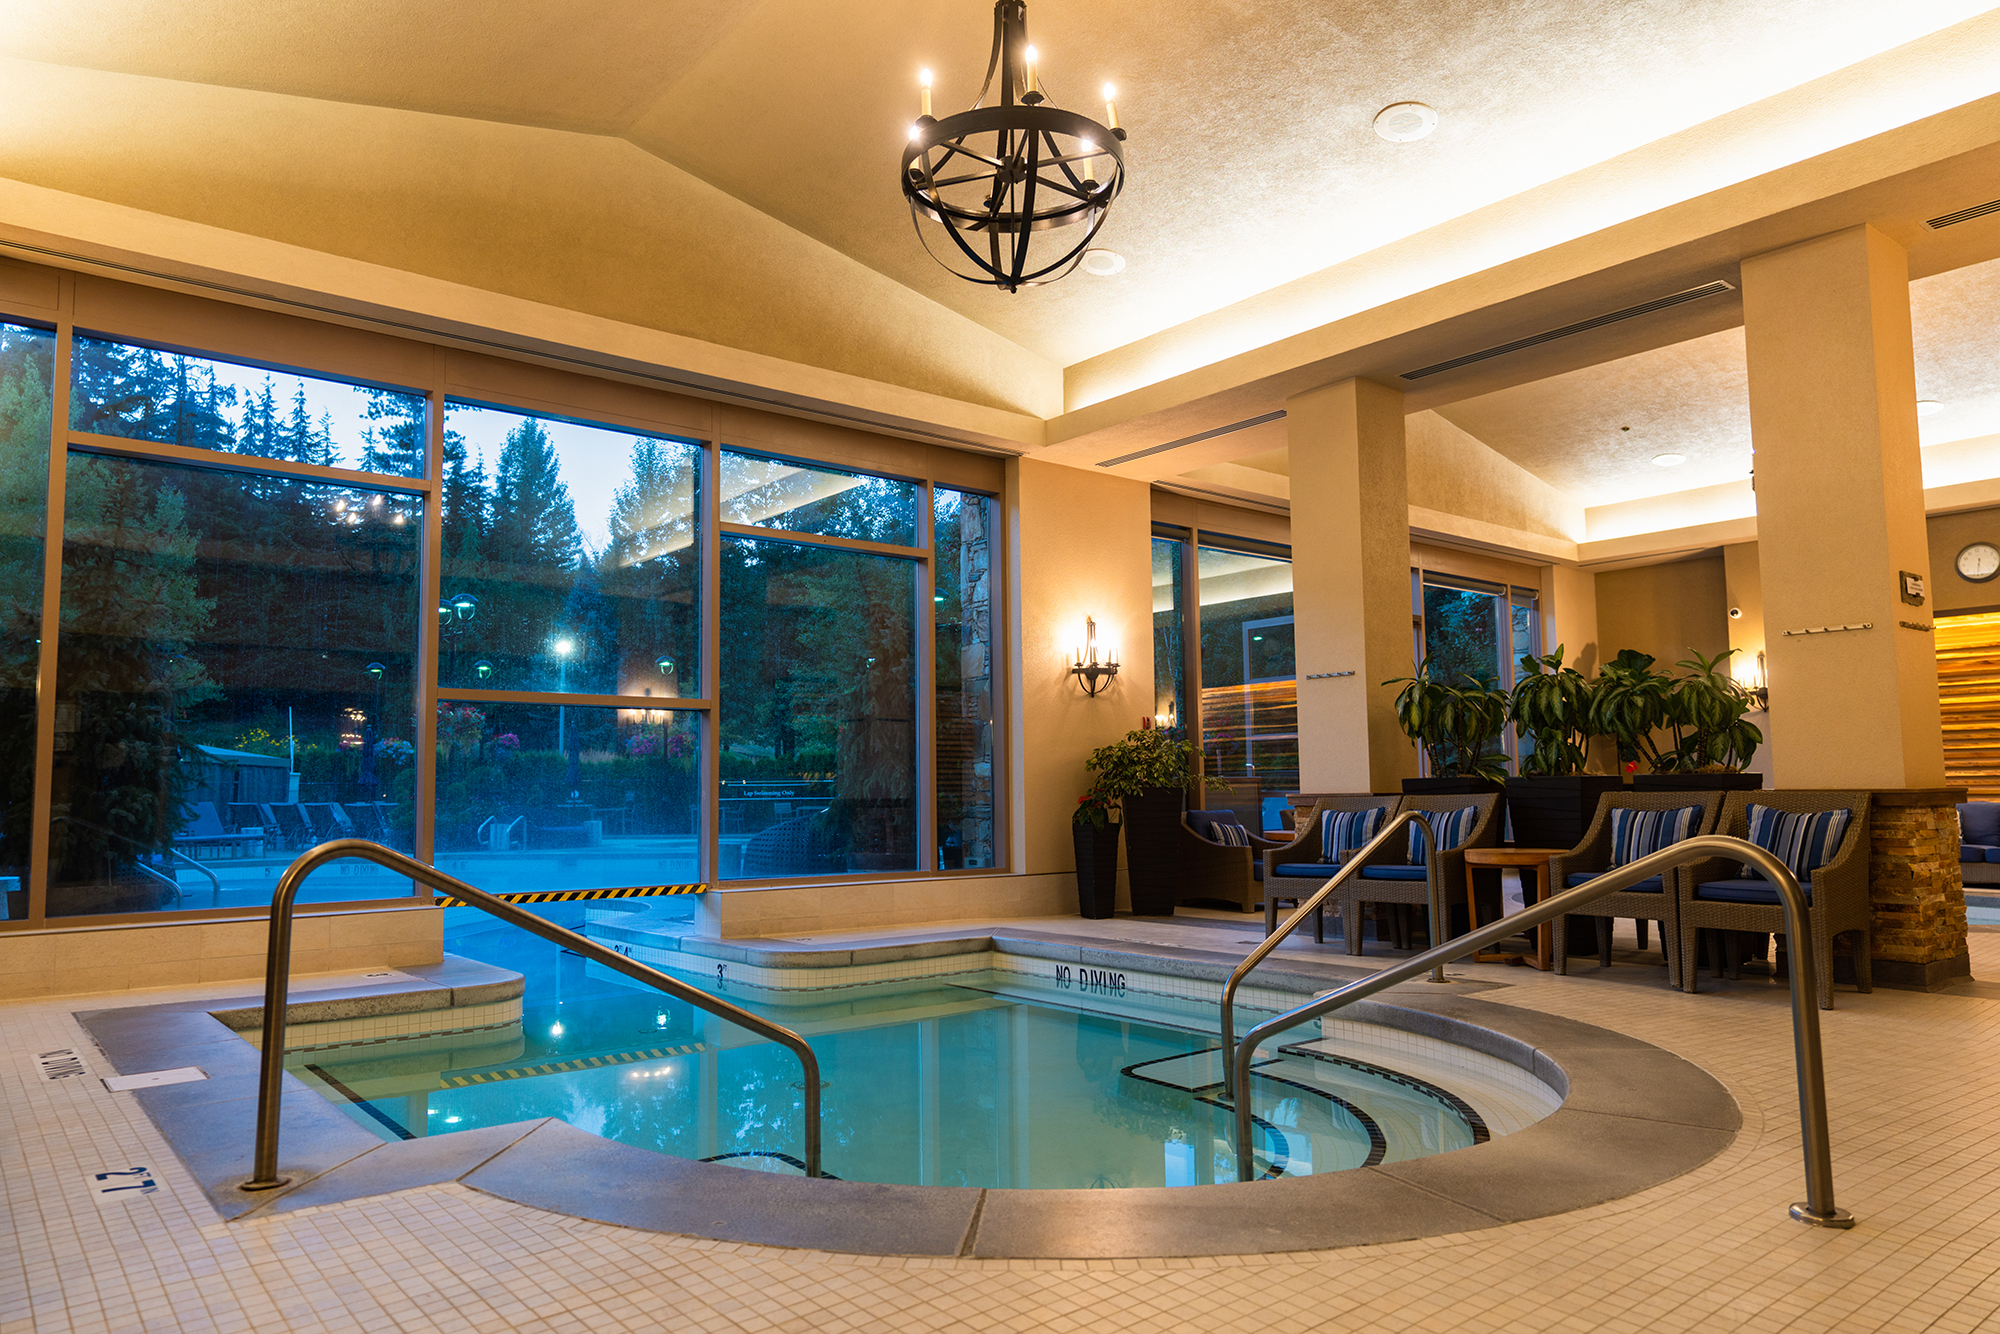 Fairmont Chateau Whistler pool facilities.